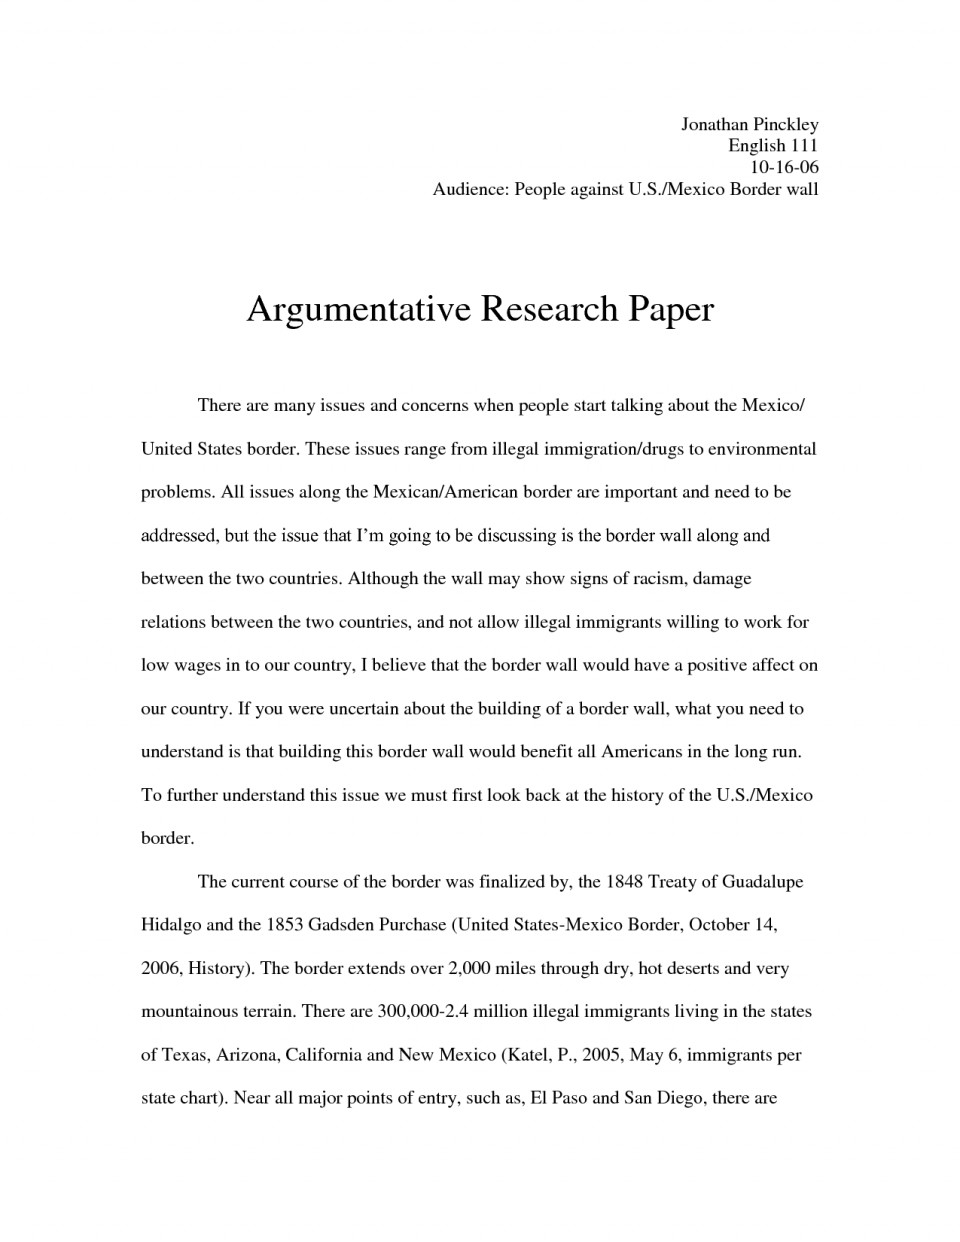 014 Topics For Argumentative Research Paper Uncategorized Debate20y Thesis High School Sentence Starters Outline Worksheet Wonderful Interesting Medical 960